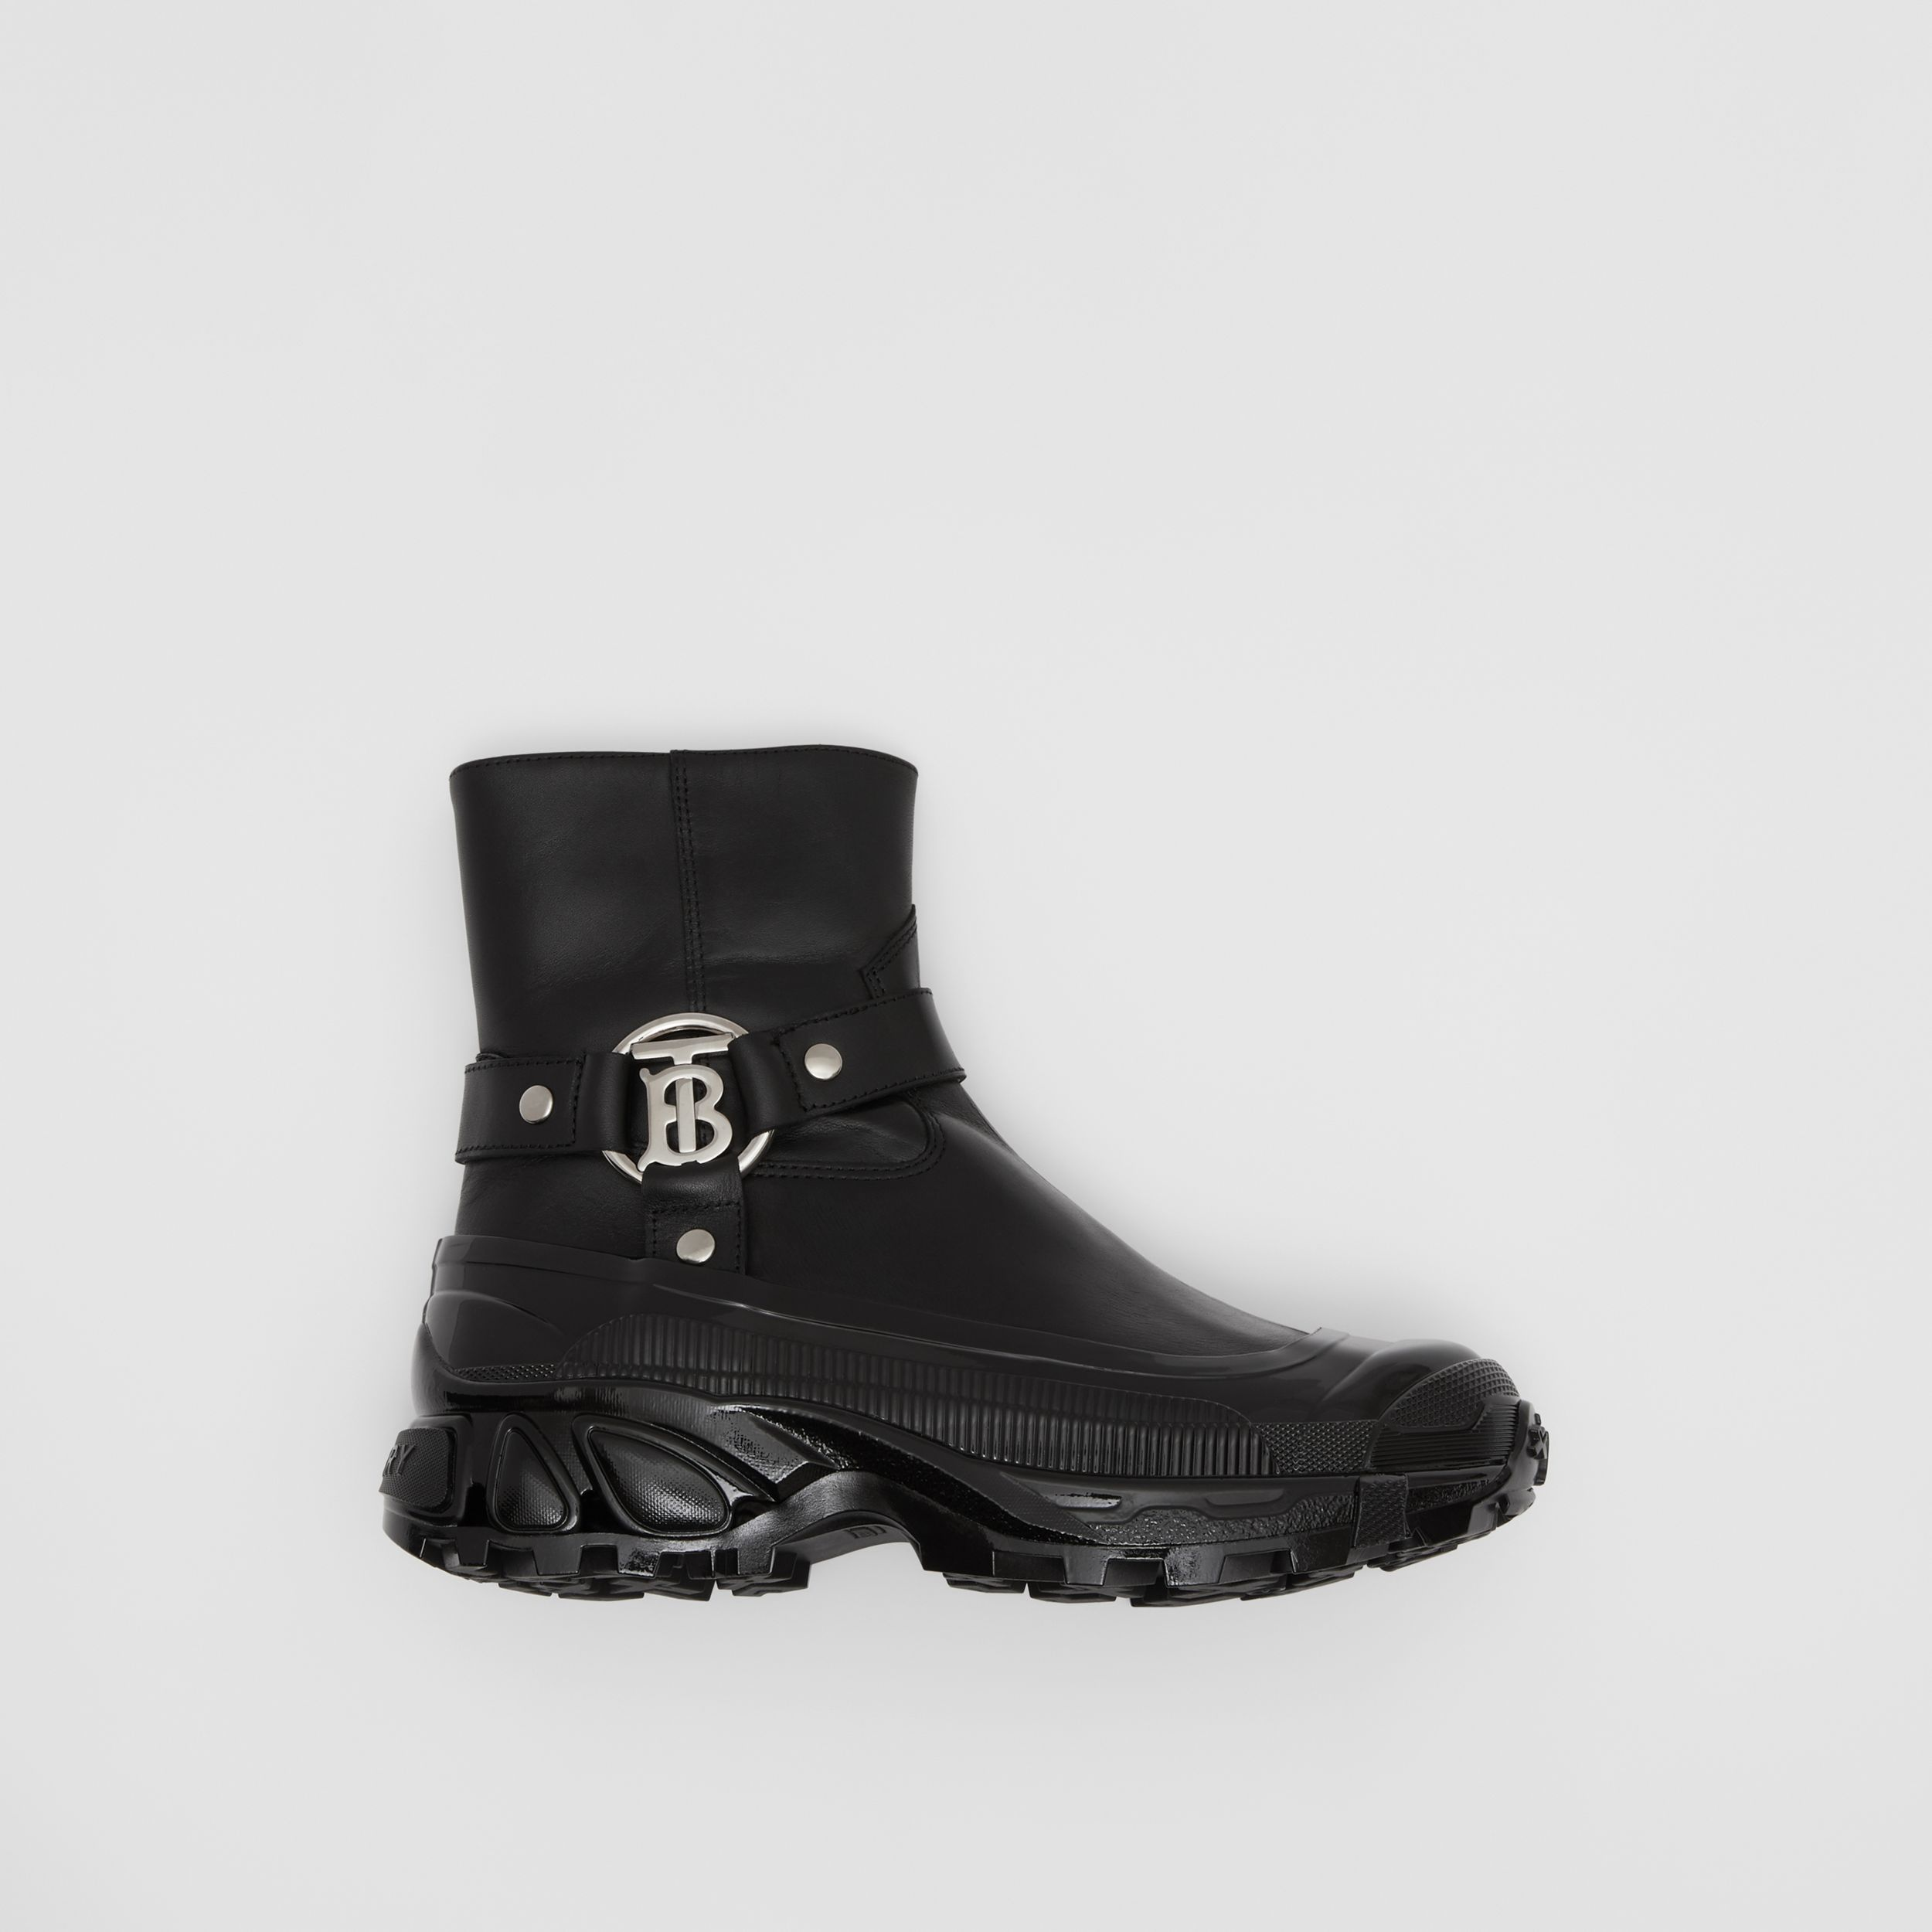 Monogram Motif Buckle Leather Boots in Black - Women | Burberry - 1